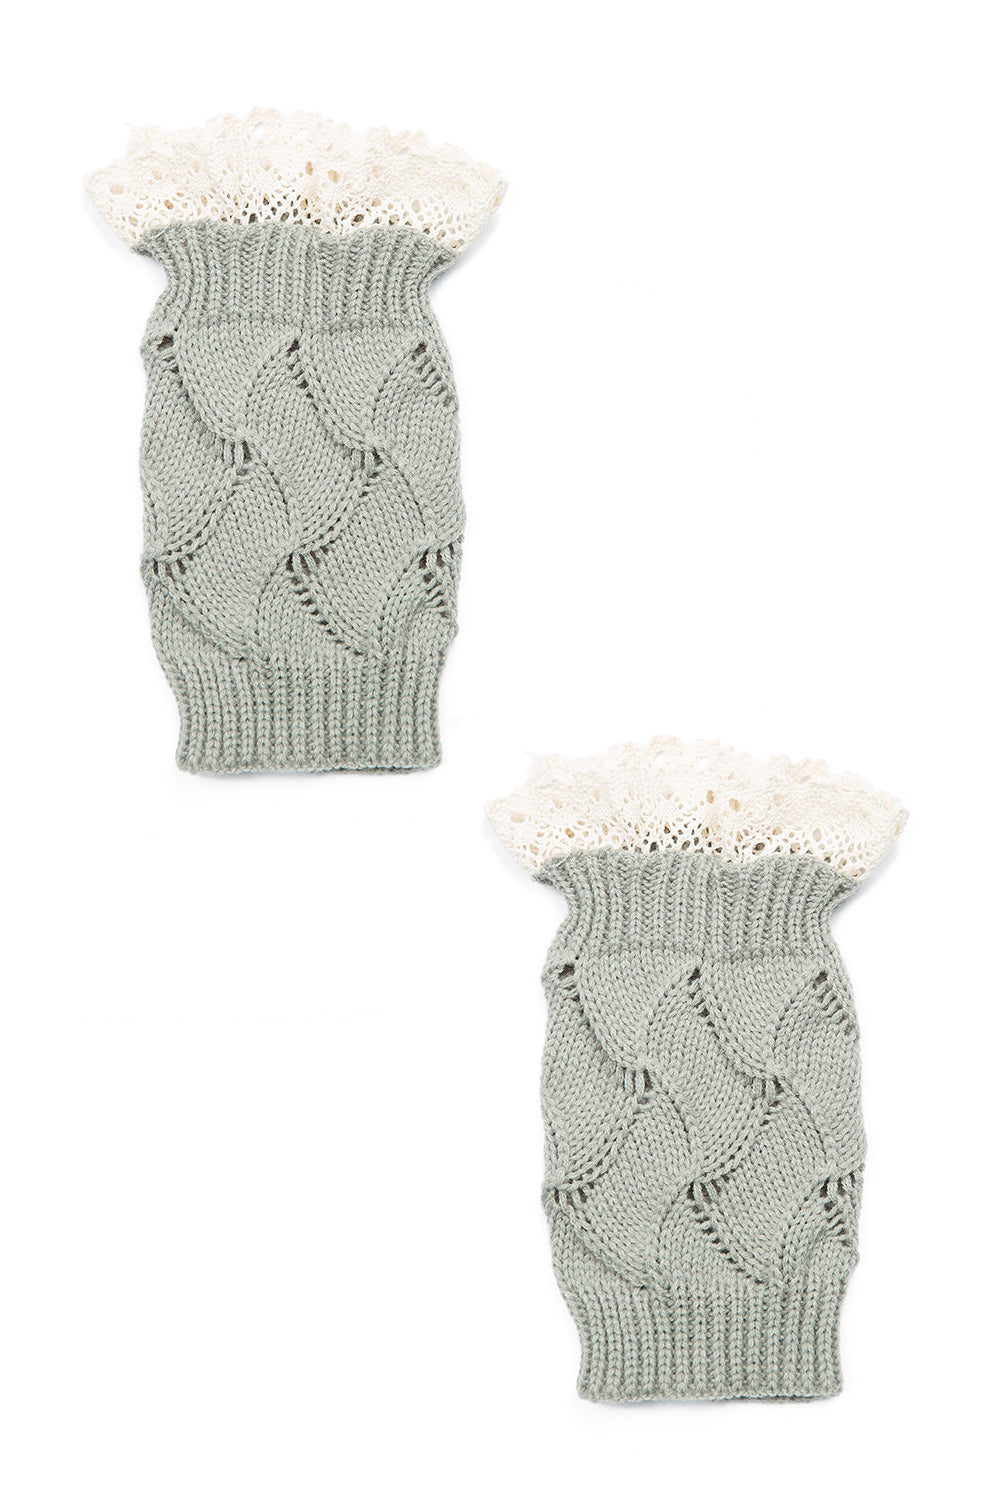 Type 2 Lovely Lace Boot Toppers in Sage